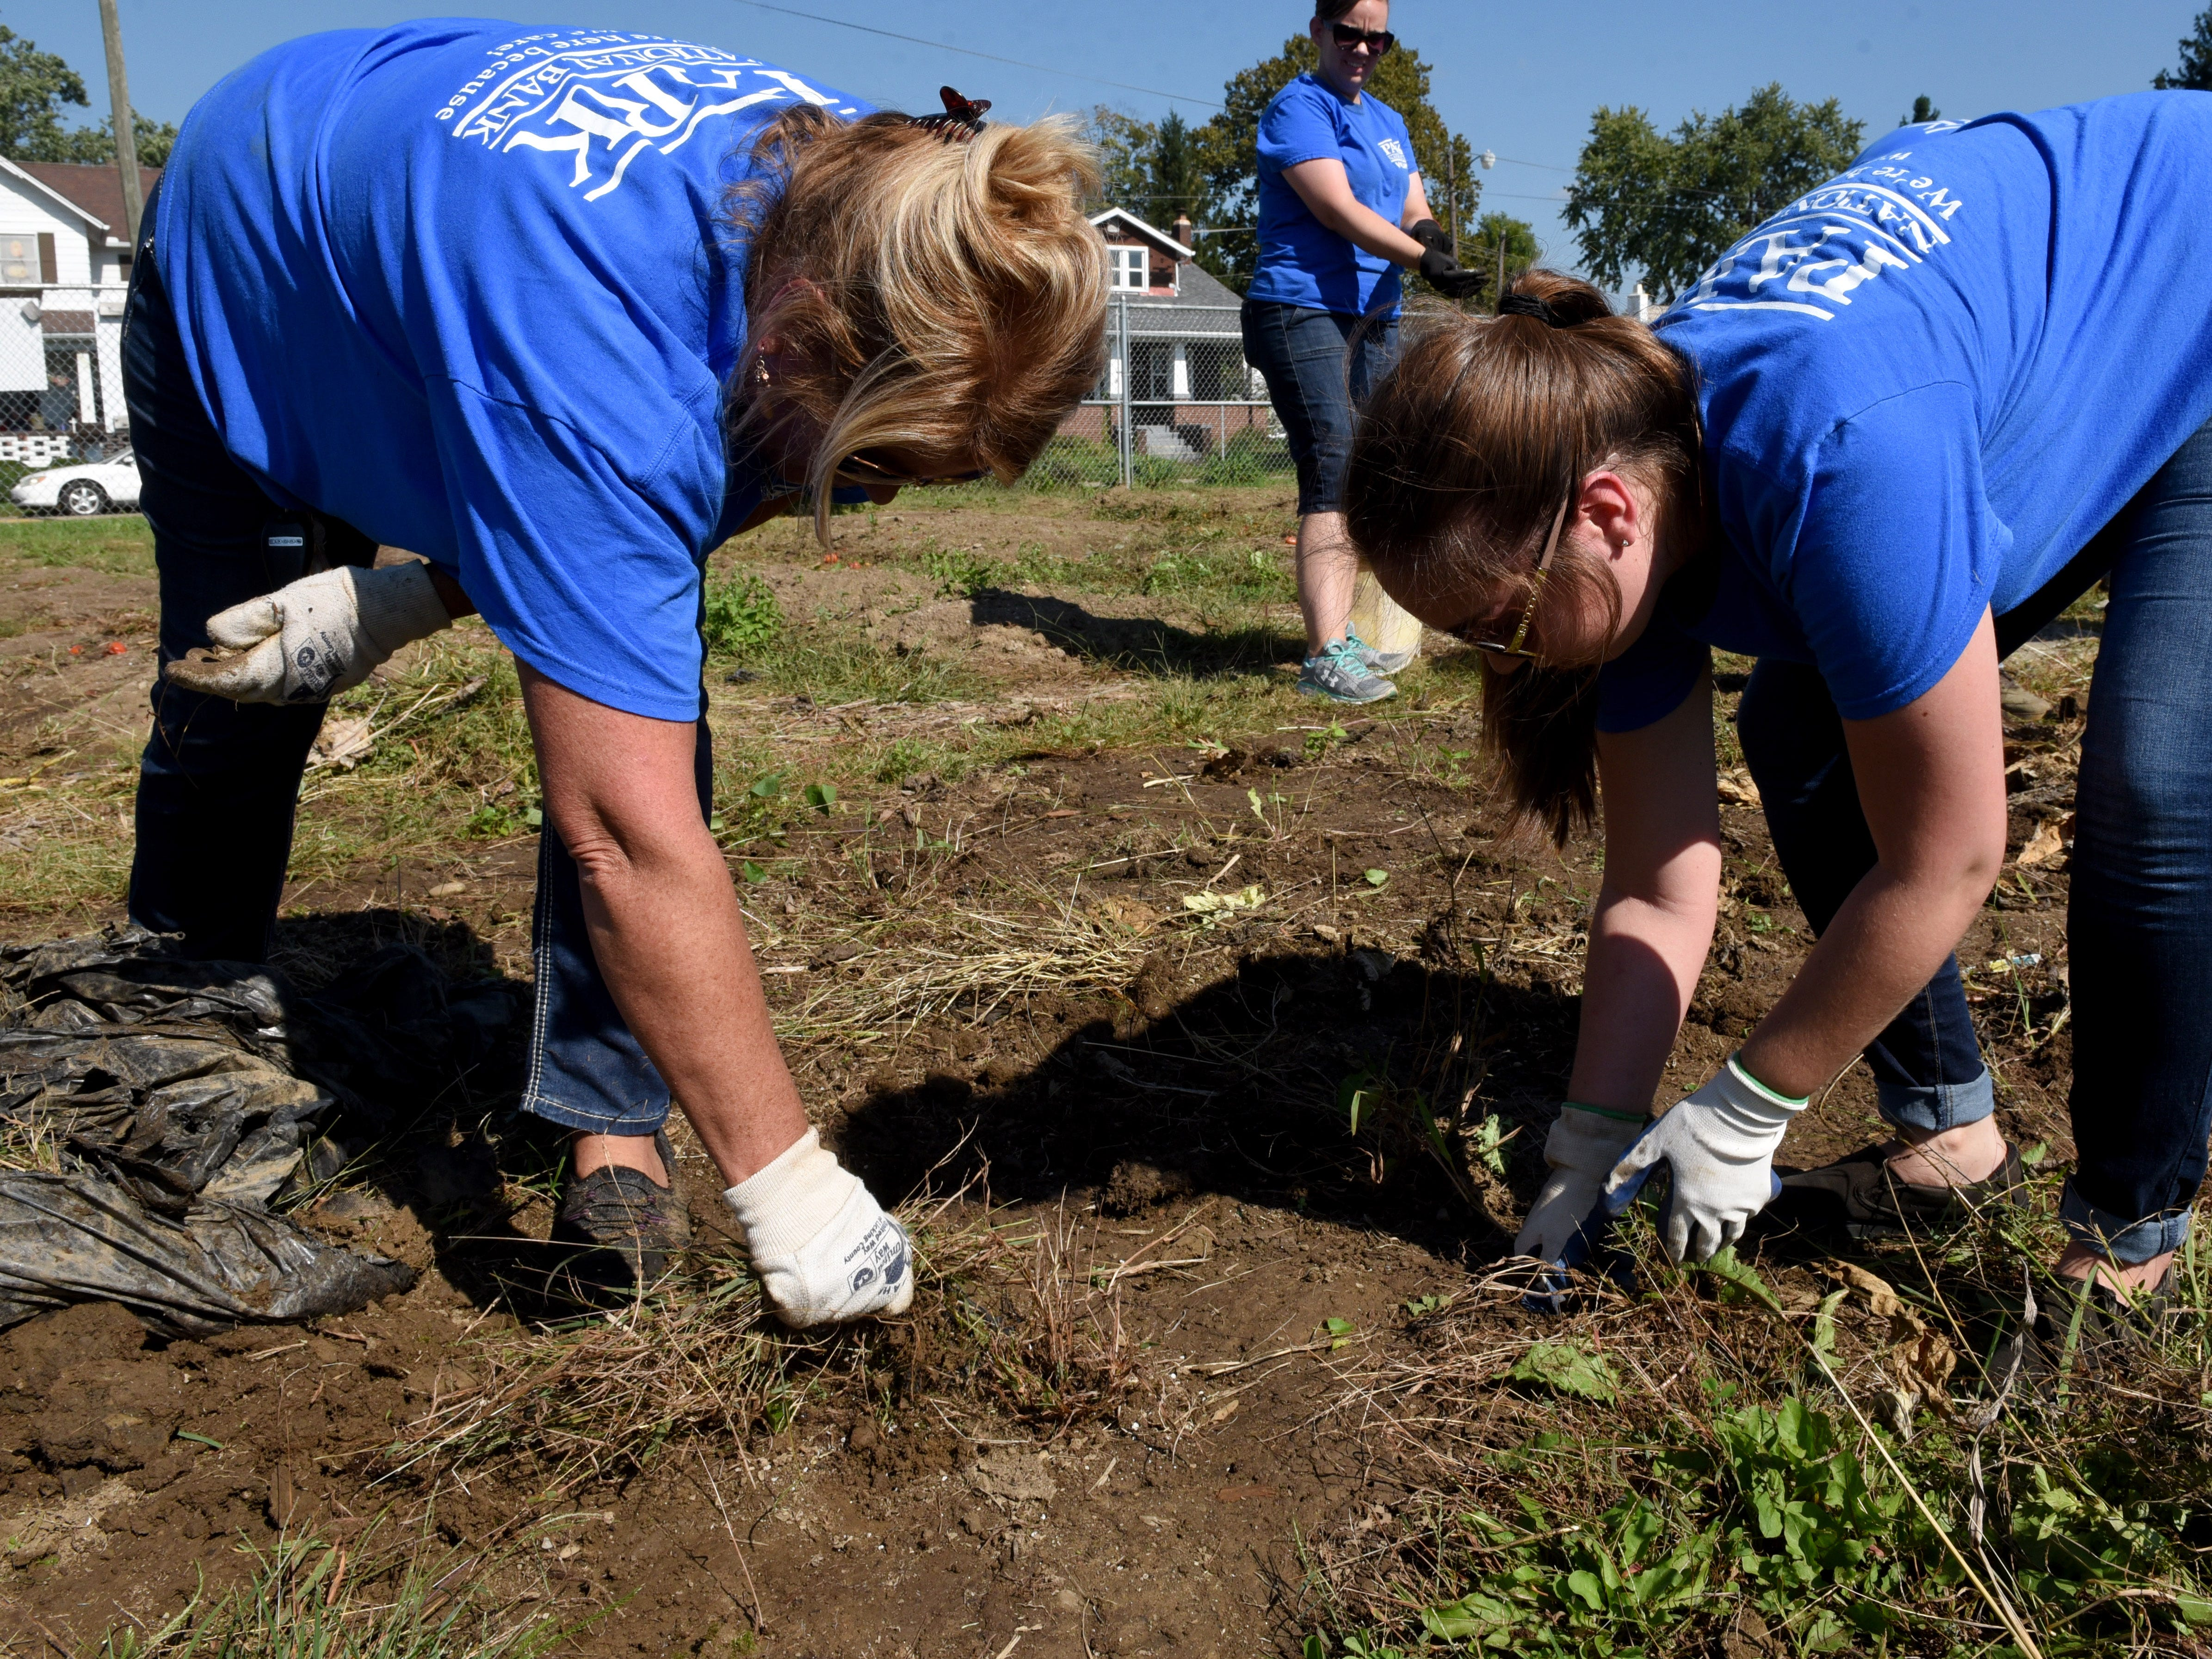 Park National Bank employees Stephanie Hardin and Macy Medina pull weeds at the Together We Grow Garden on East Main Street in Newark. Bank employees volunteered at the garden to prepare it for winter as part of the company's PNB Cares initiative on Monday, Oct. 8, 2018. Employees worked on over 70 projects for organizations in Central Ohio communities. Local projects also included landscaping at the Weathervane Playhouse, organizing books for the Licking County Library, and painting for the Licking County Coalition for Housing.